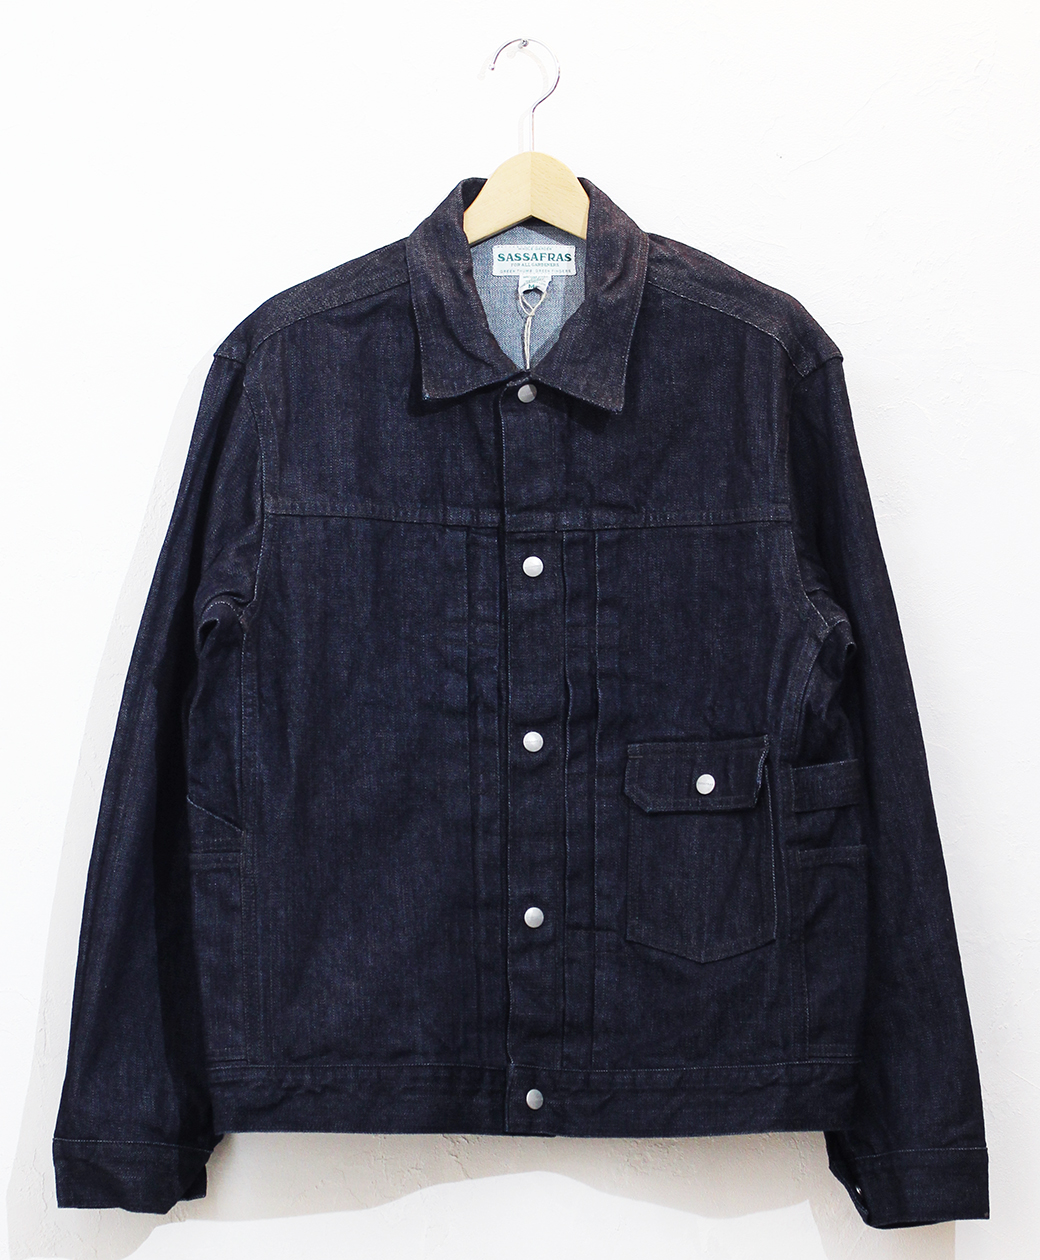 SASSAFRAS Gardener Jacket(13.5oz Broken Denim)